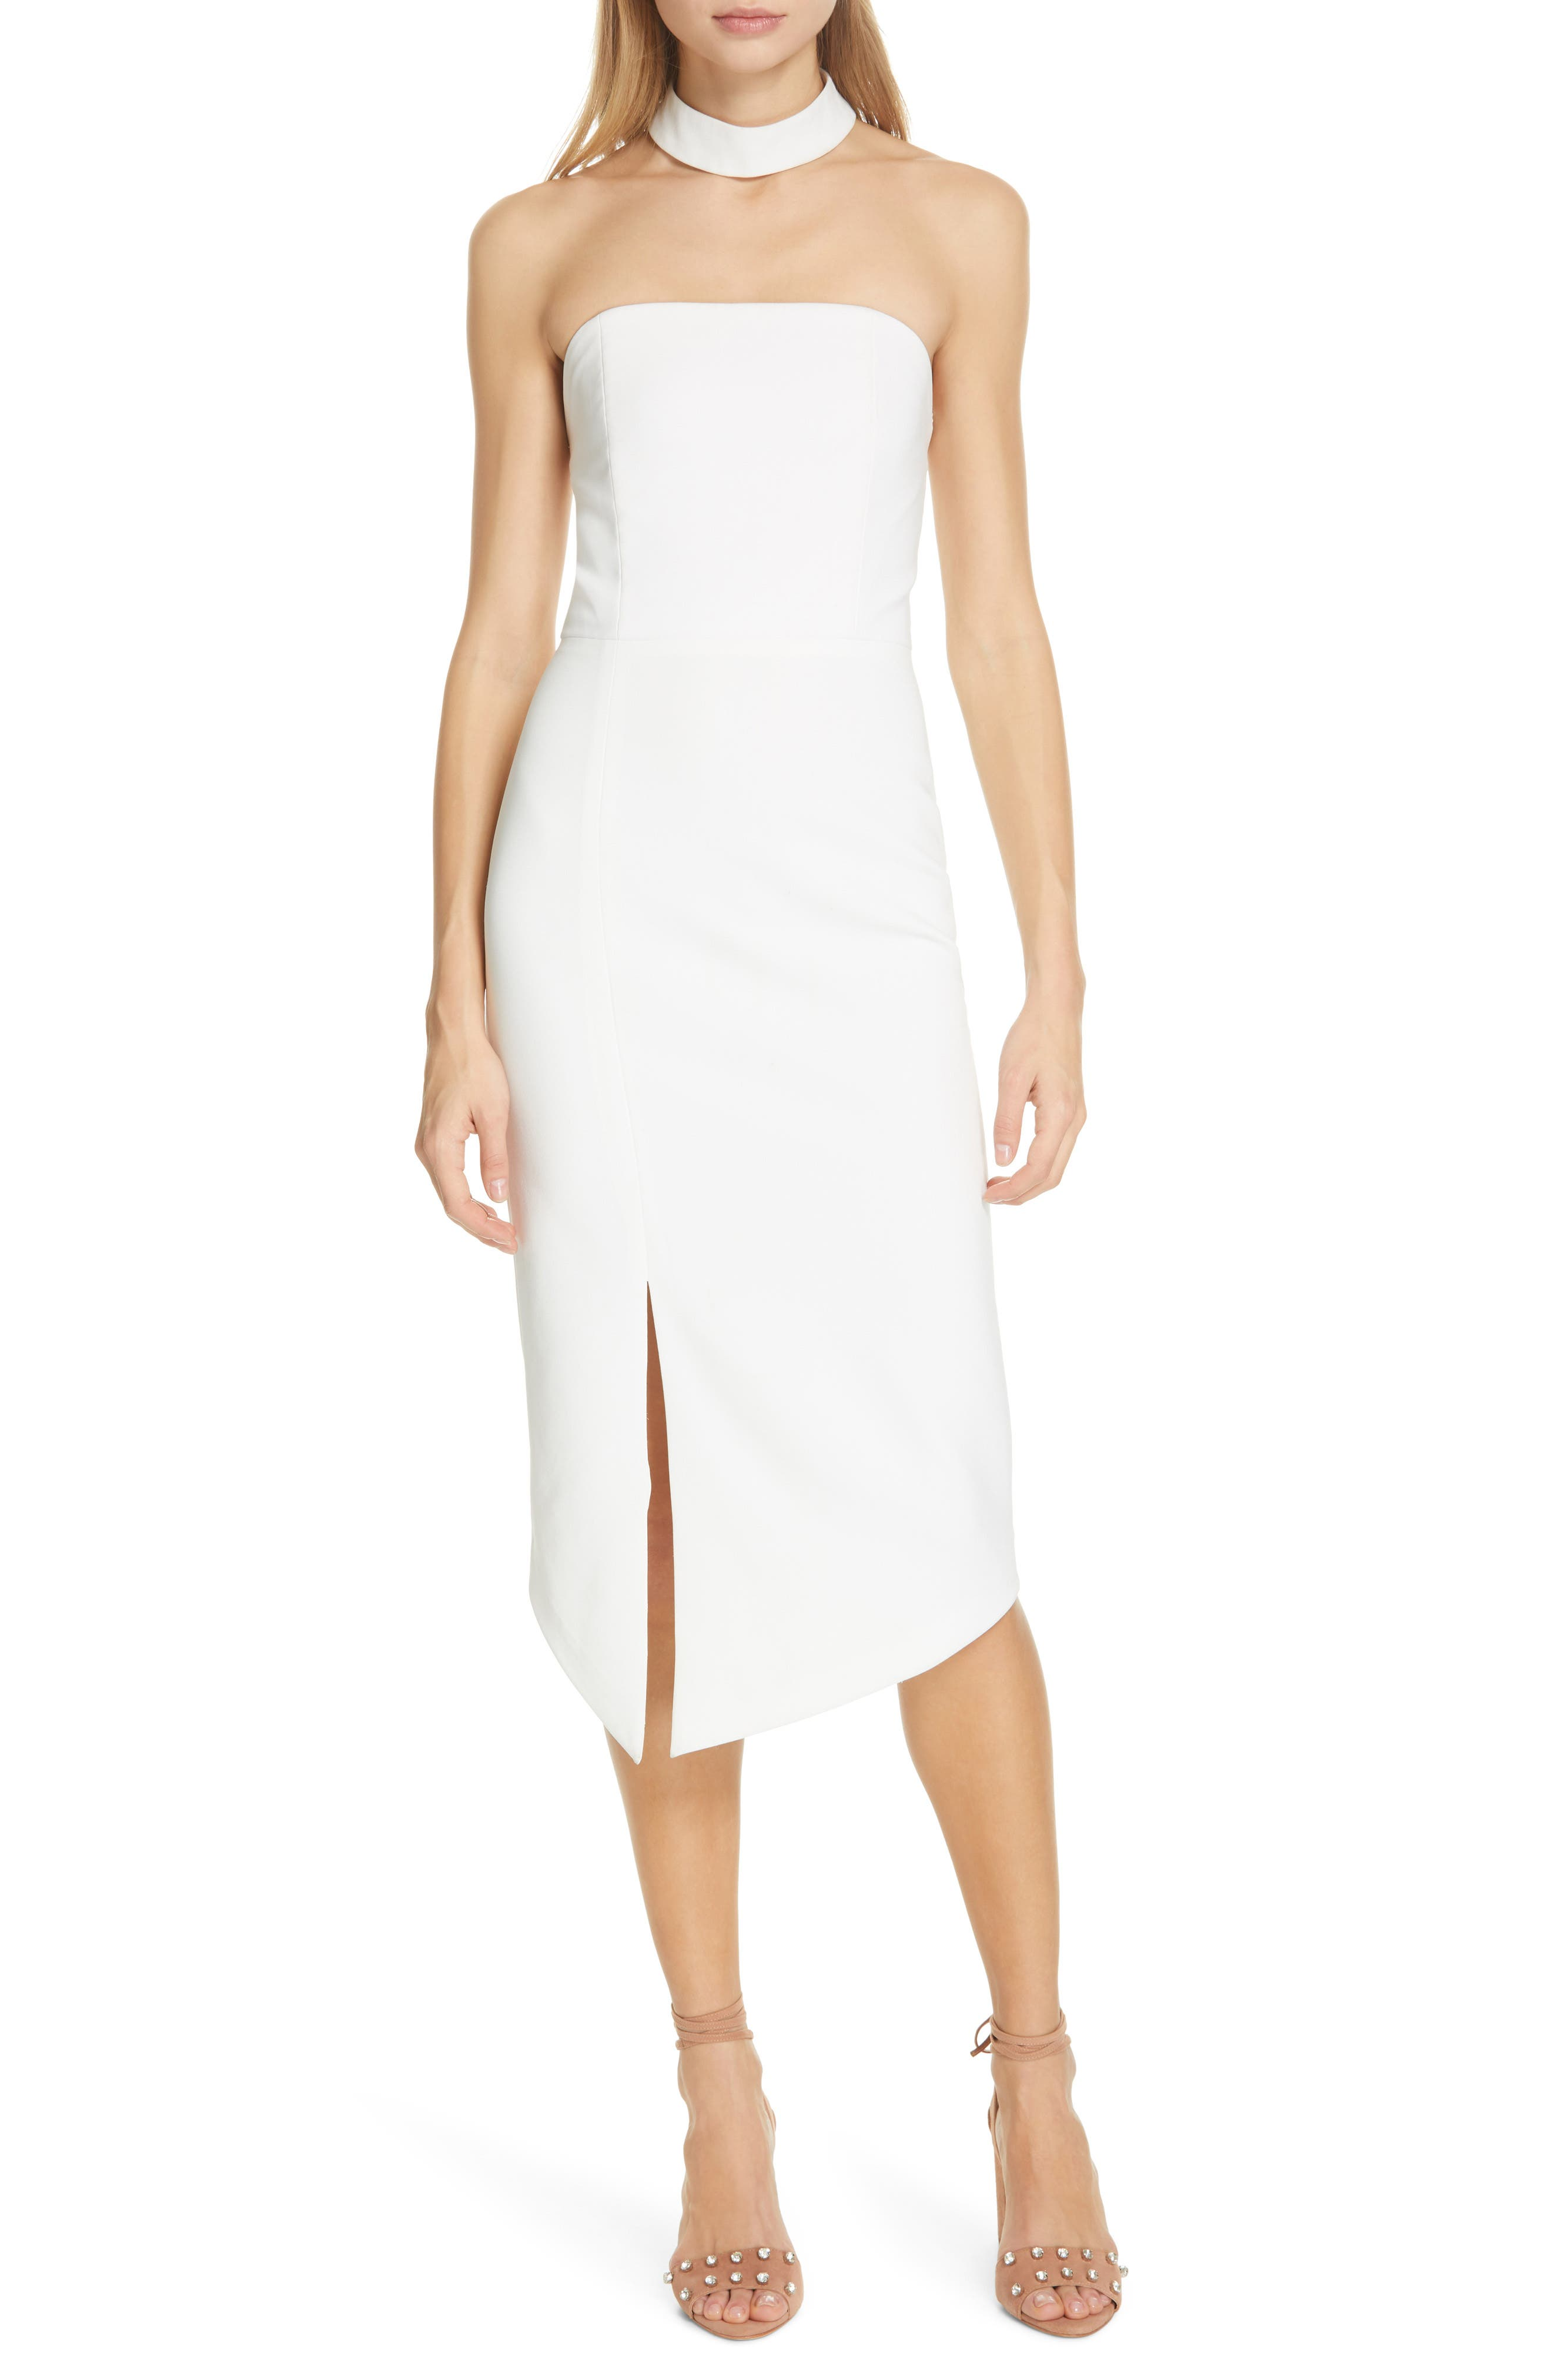 Alice + Olivia Sia Strapless Choker Collar Dress, Ivory